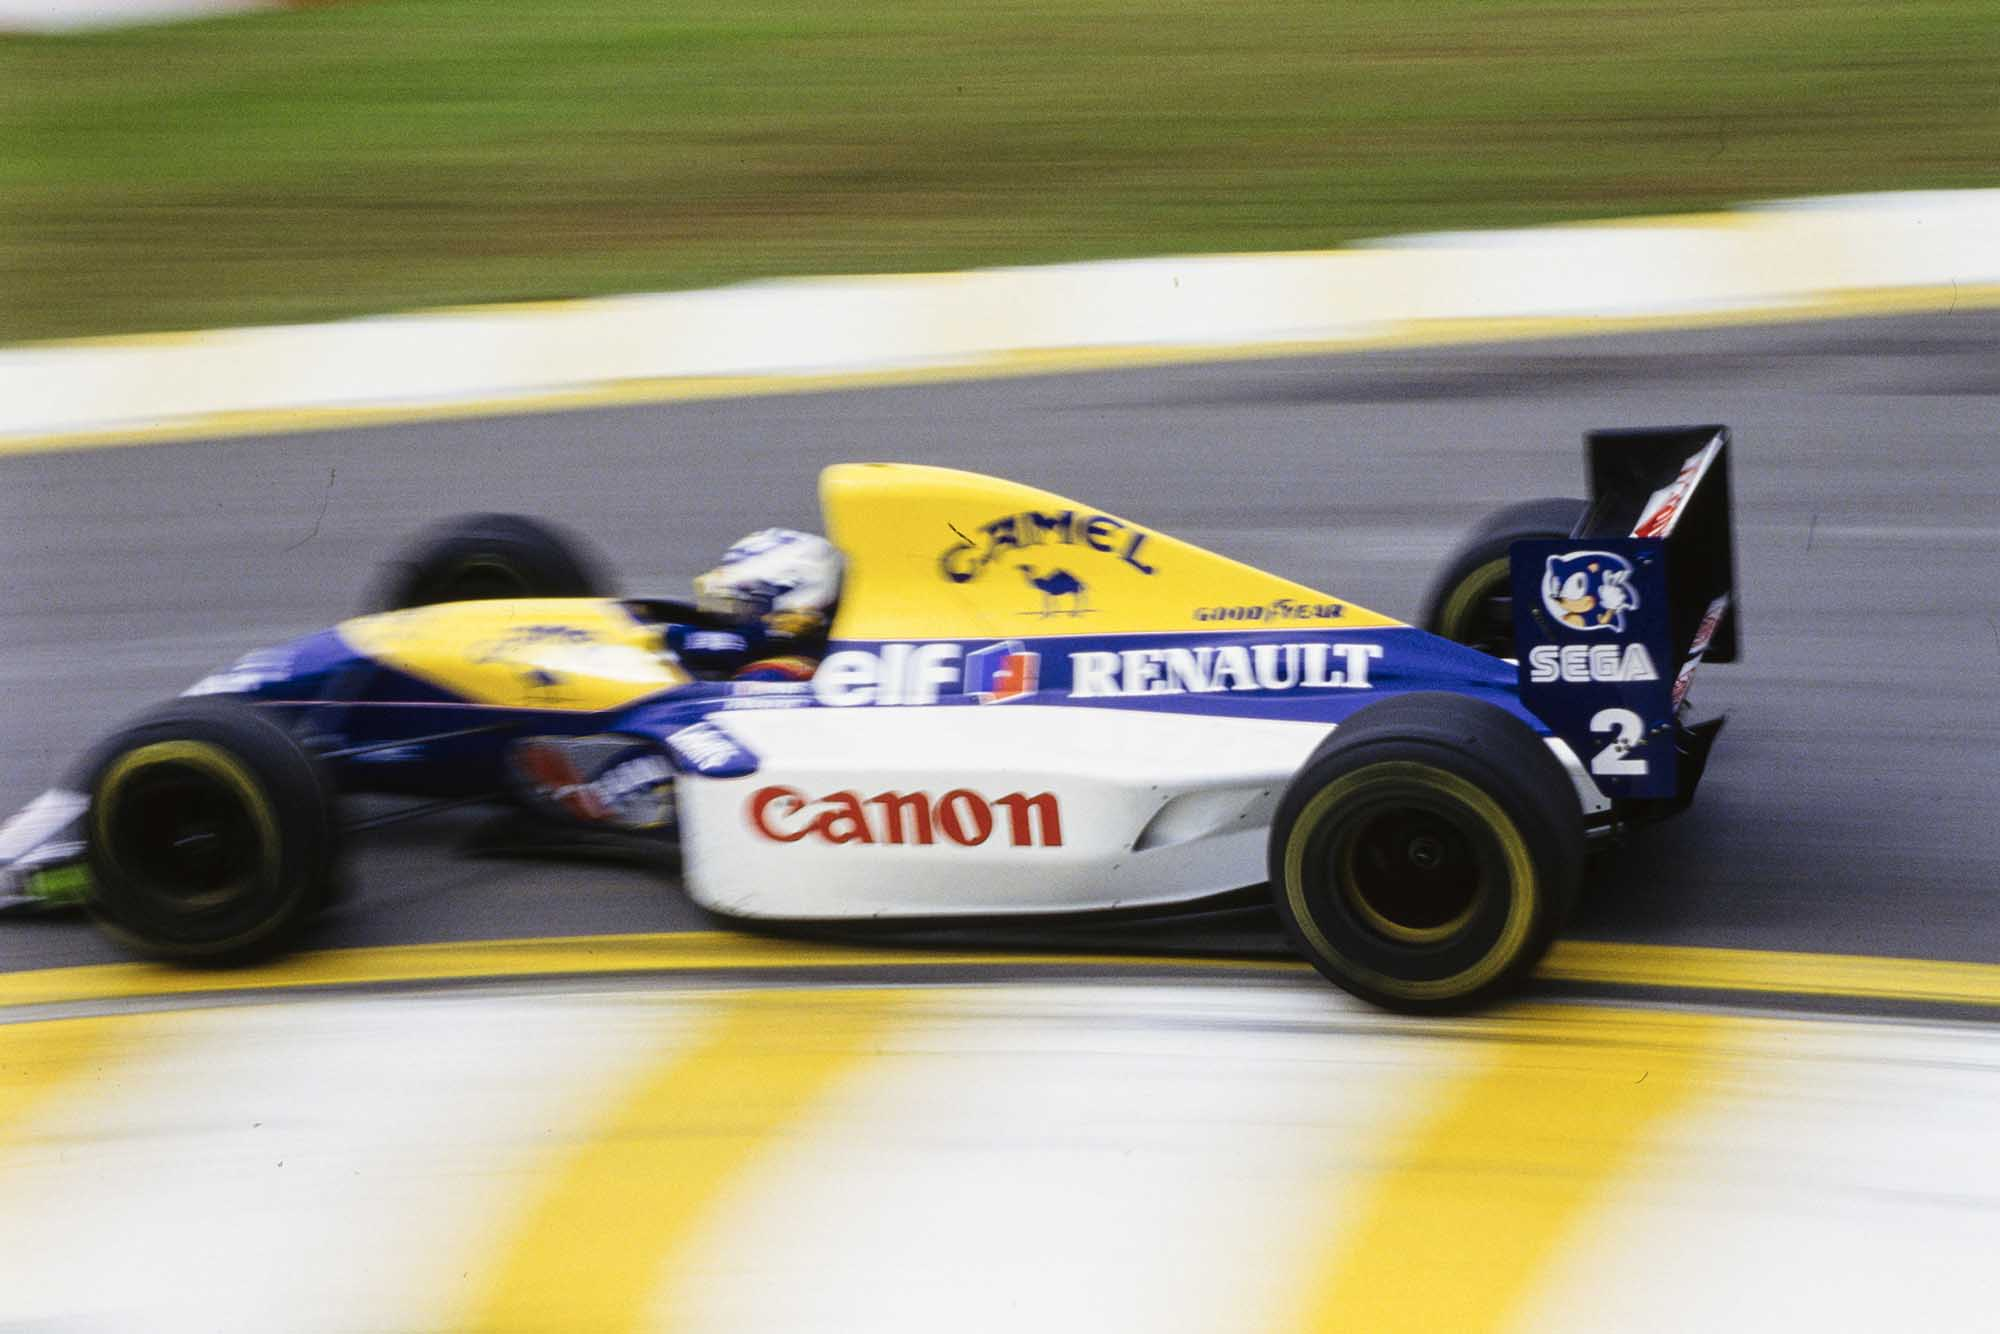 Alain Prost rounds the first corner at 1993 Brazil Grand Prix